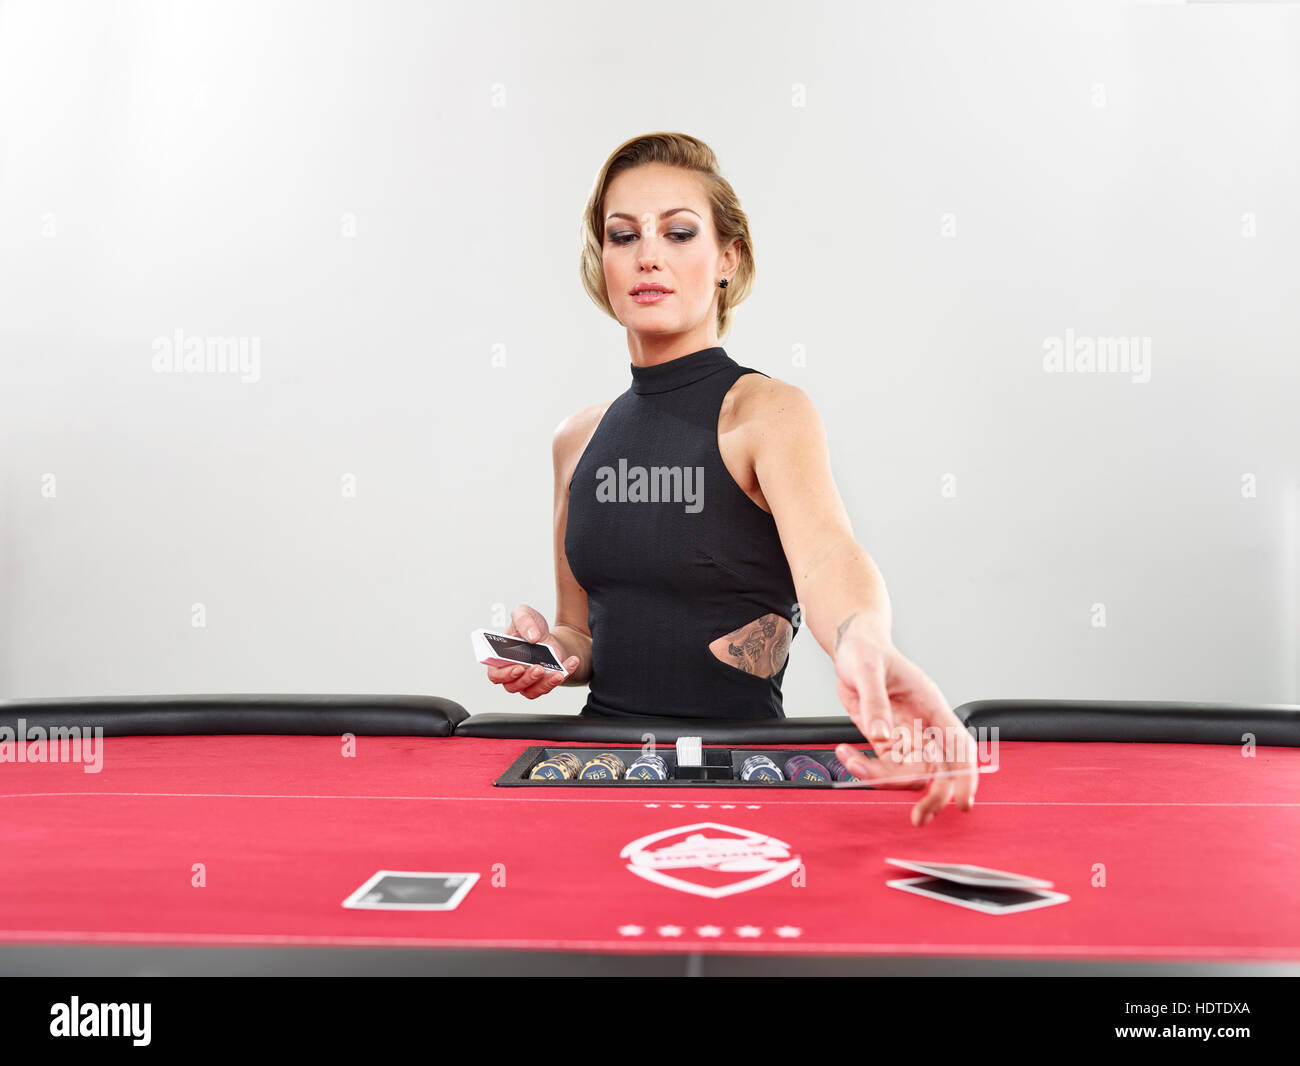 Woman playing blackjack, casino, playing cards, chips - Stock Image